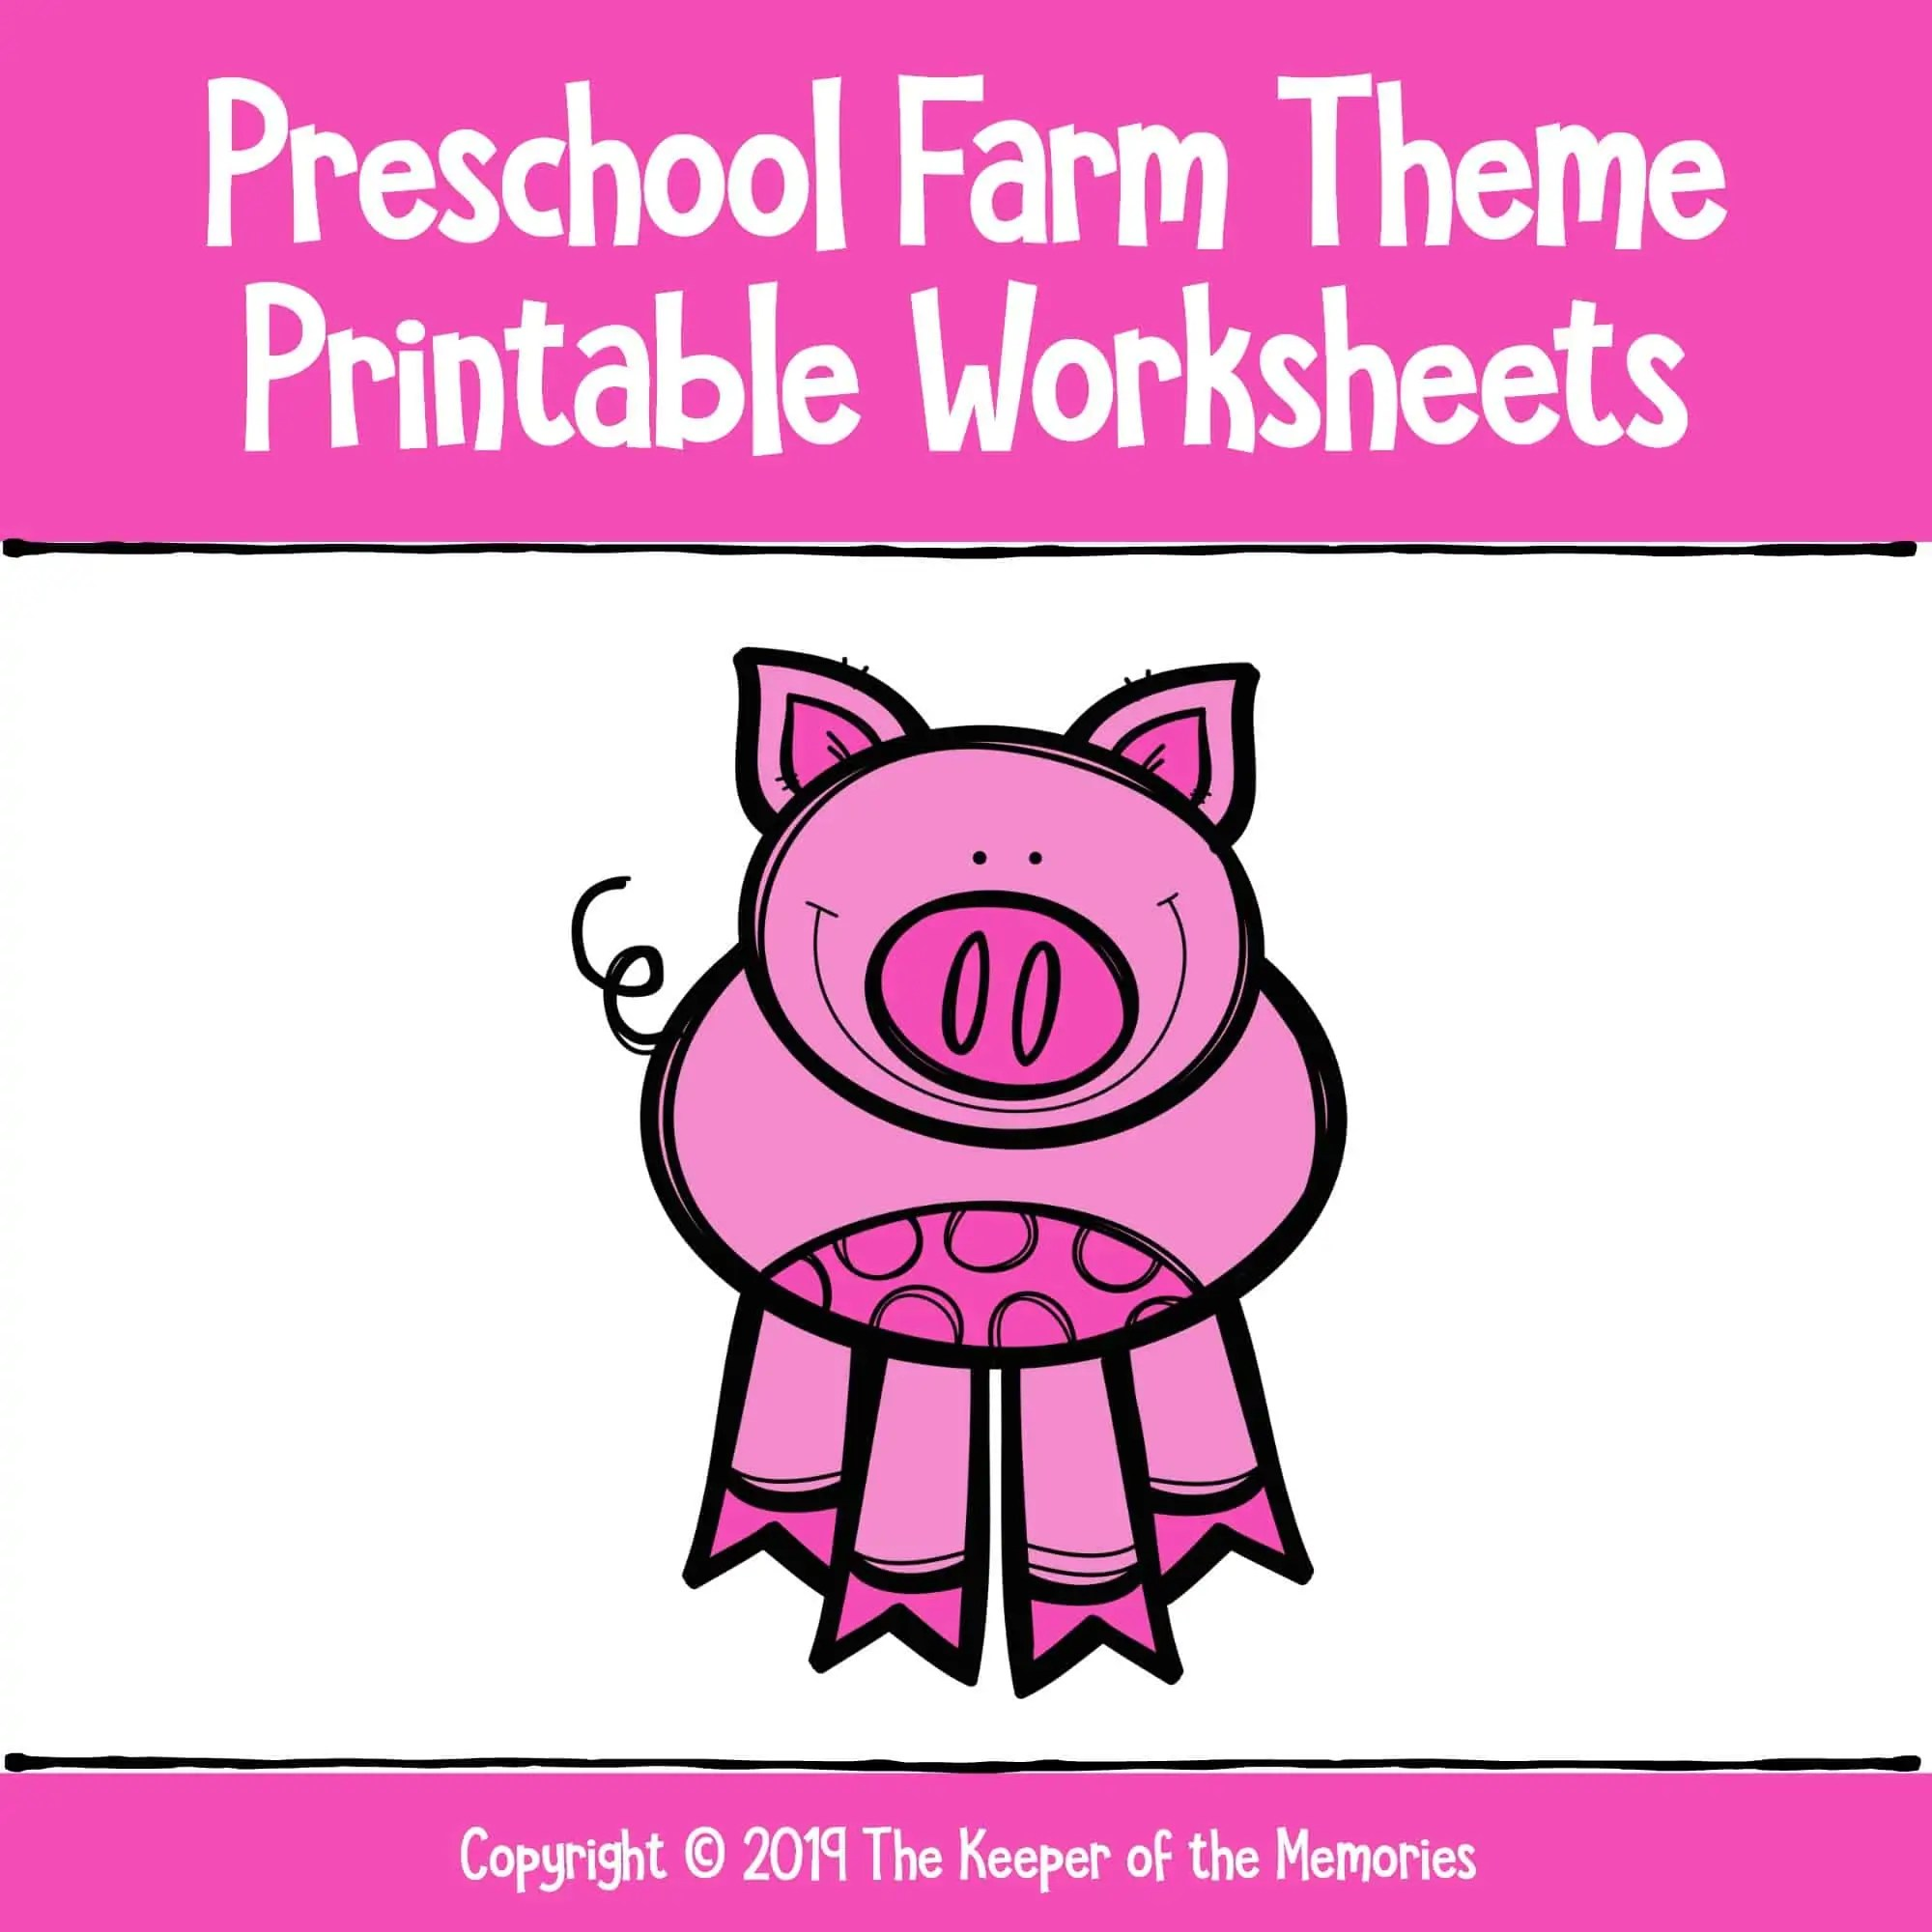 Preschool Farm Theme Printable Worksheets Cover